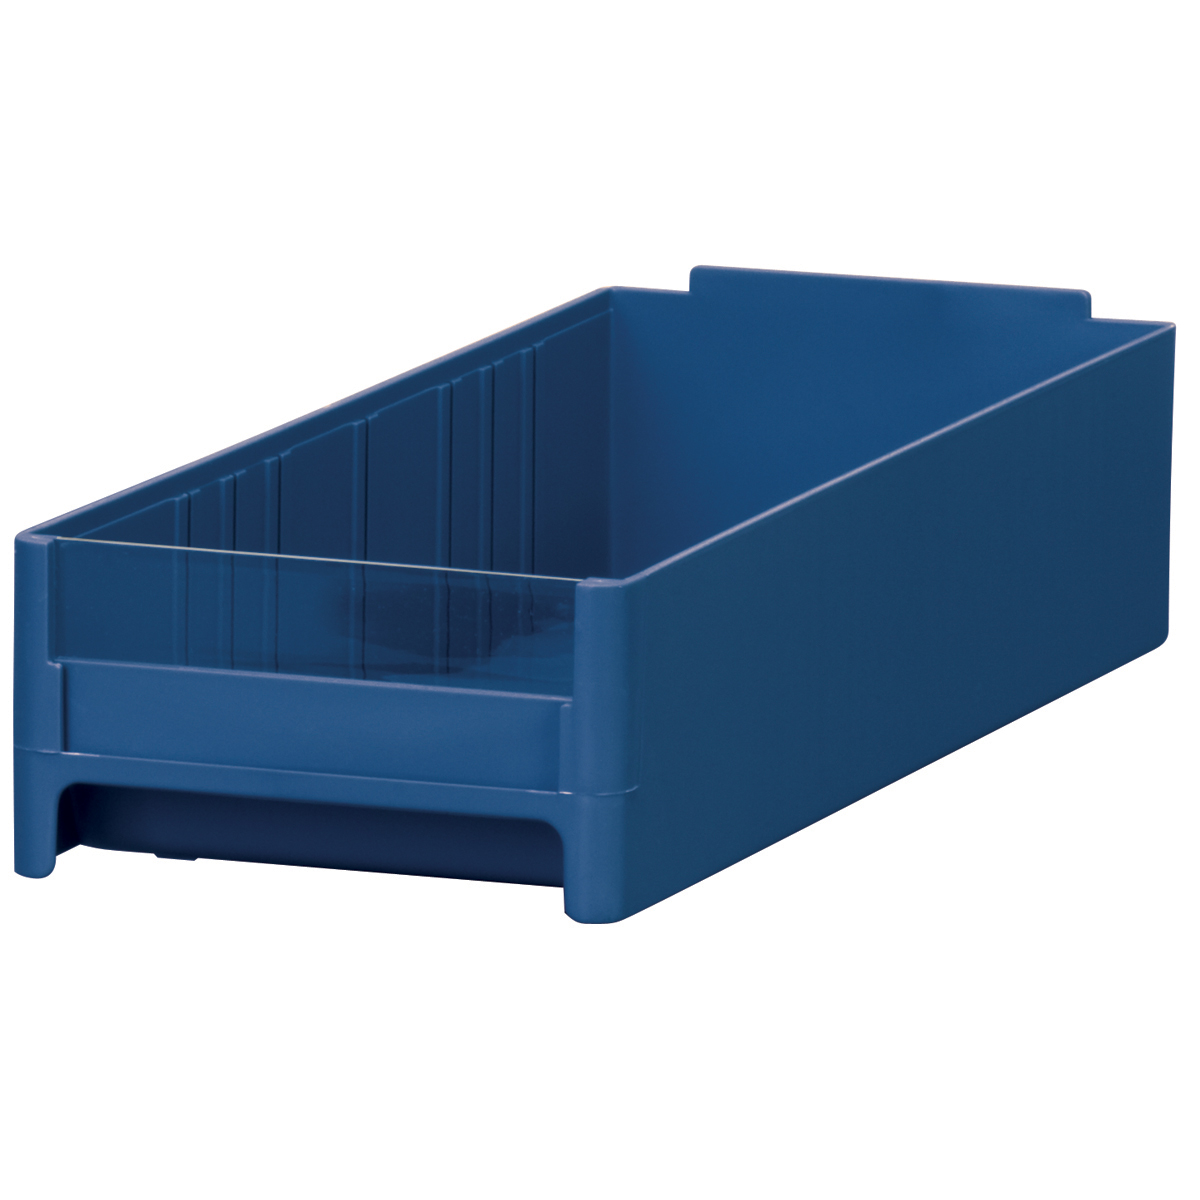 19-Series Cabinet Drawer 4 x 2-1/16 x 10-9/16, Blue.  This item sold in carton quantities of 32.